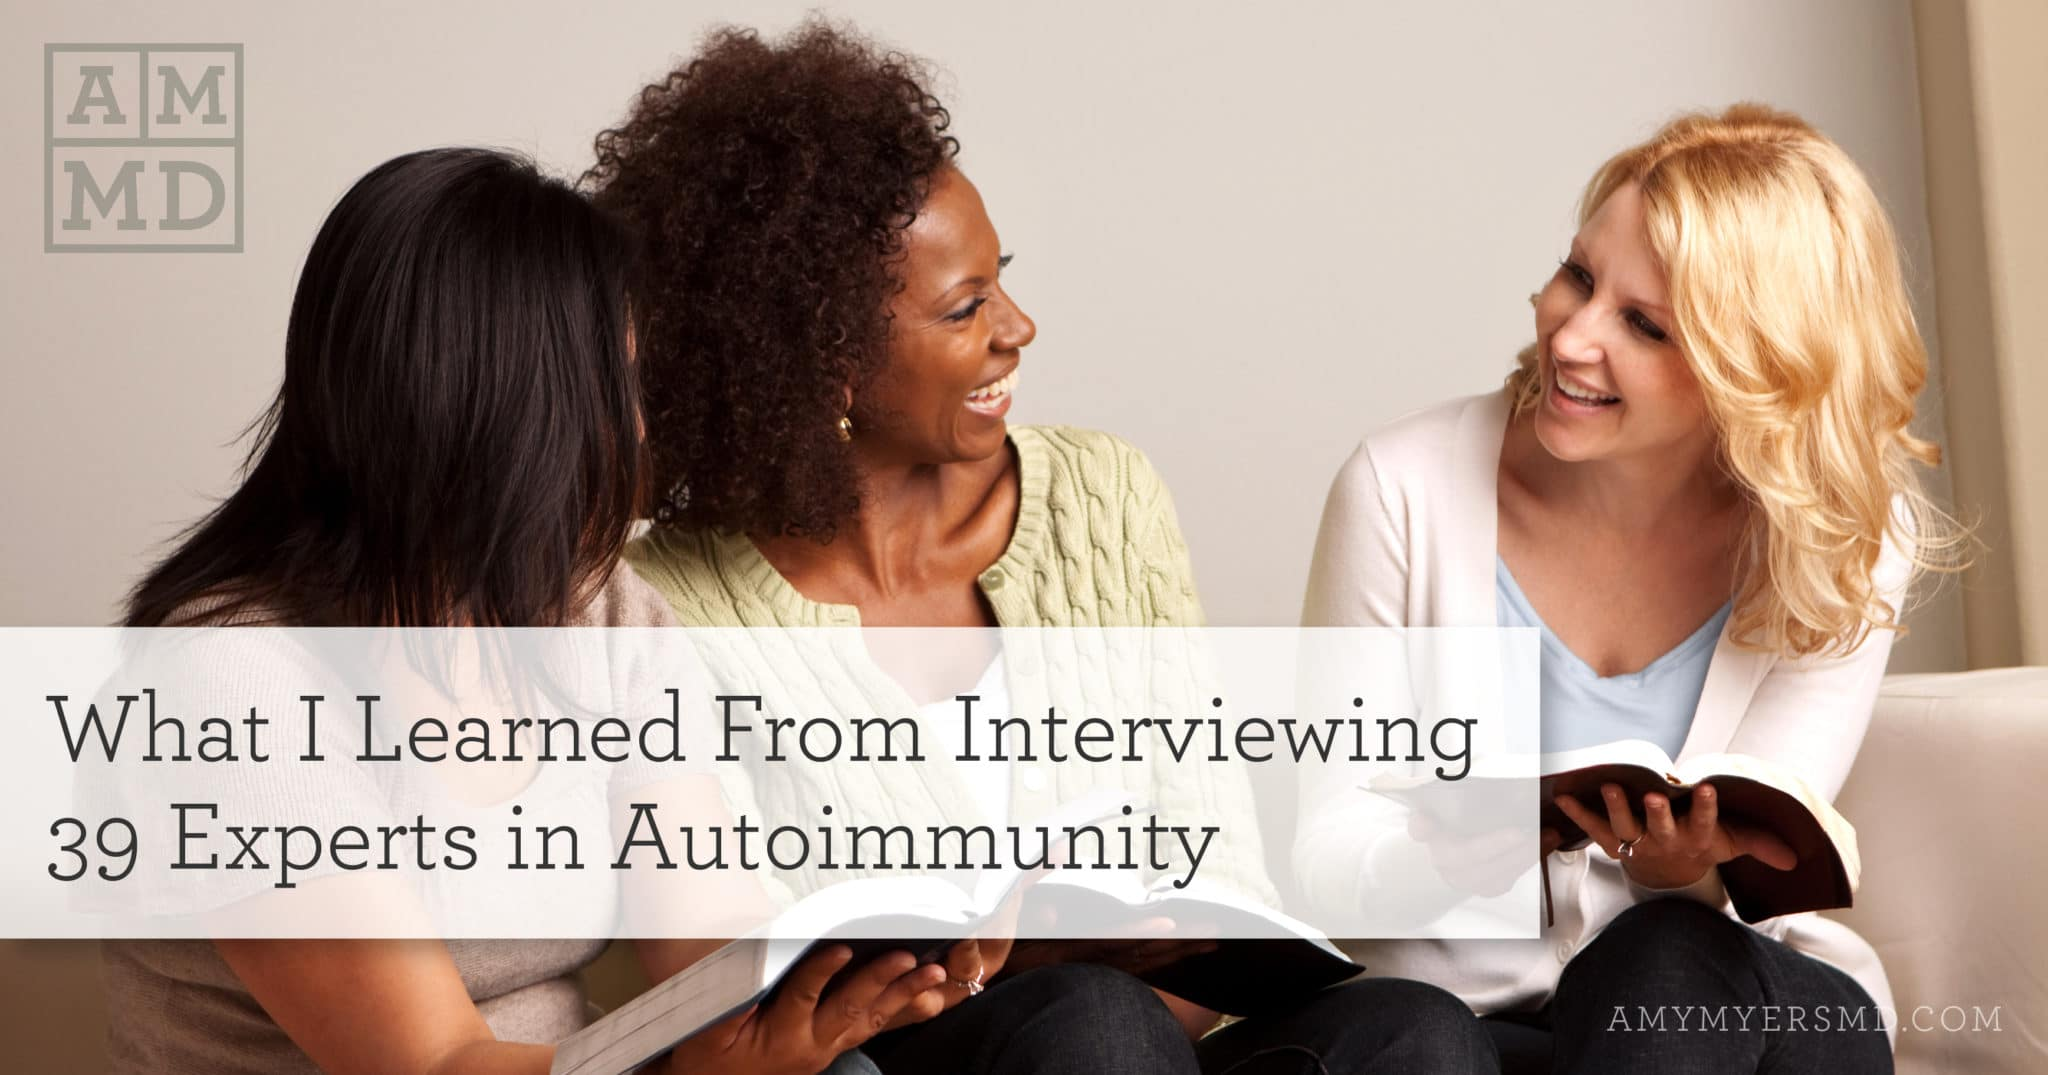 What I Learned From Interviewing 39 Experts in Autoimmunity - Women Reading Together - Featured Image - Amy Myers MD